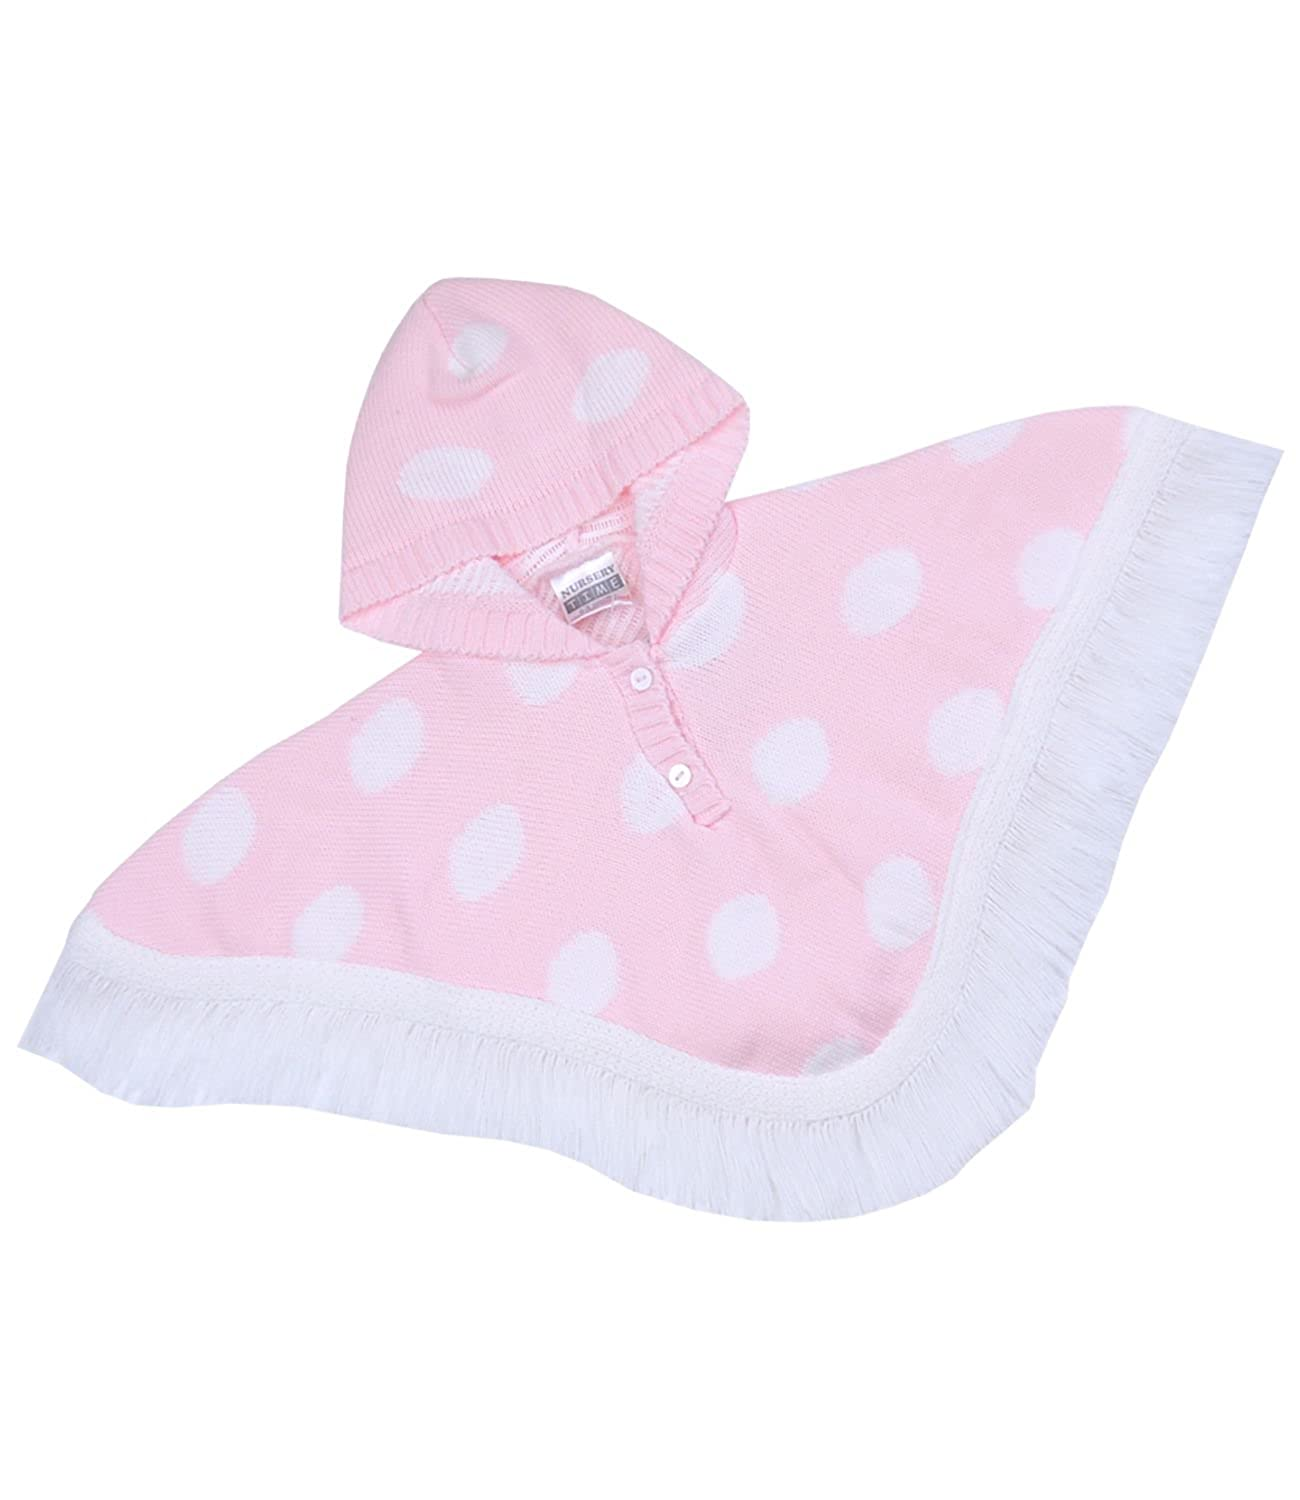 40997d89e Amazon.com  BabyPrem Baby Spotted Poncho Pink Girl Infant Clothes ...